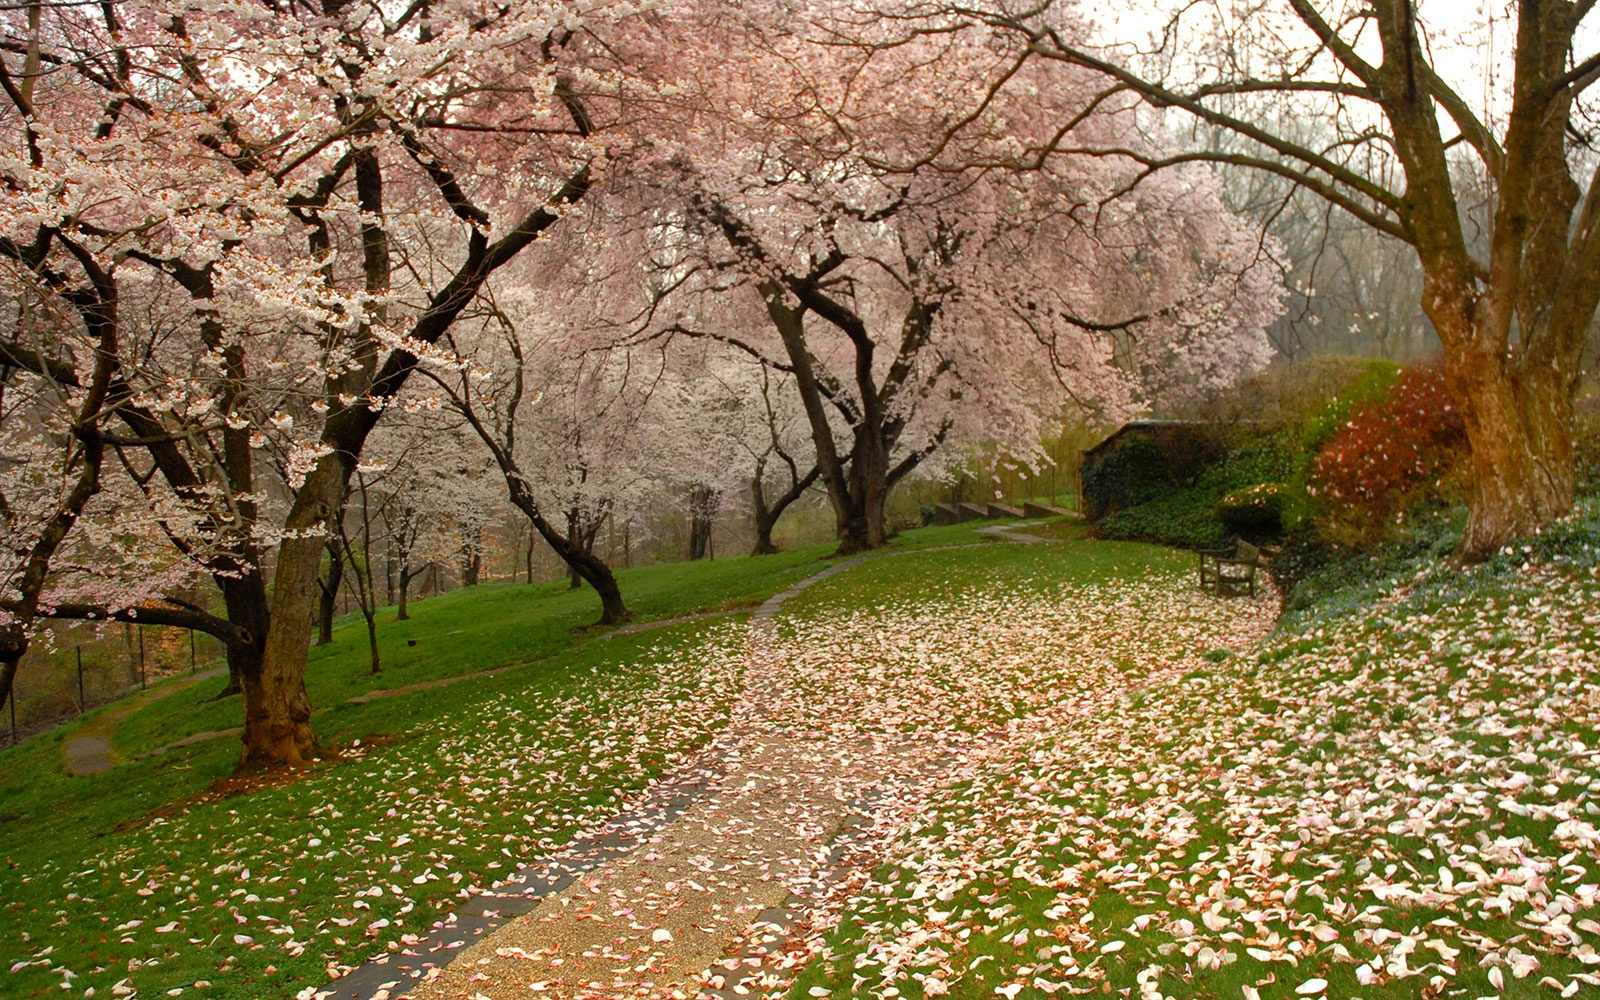 Dumbarton Oaks, Washington, D.C.